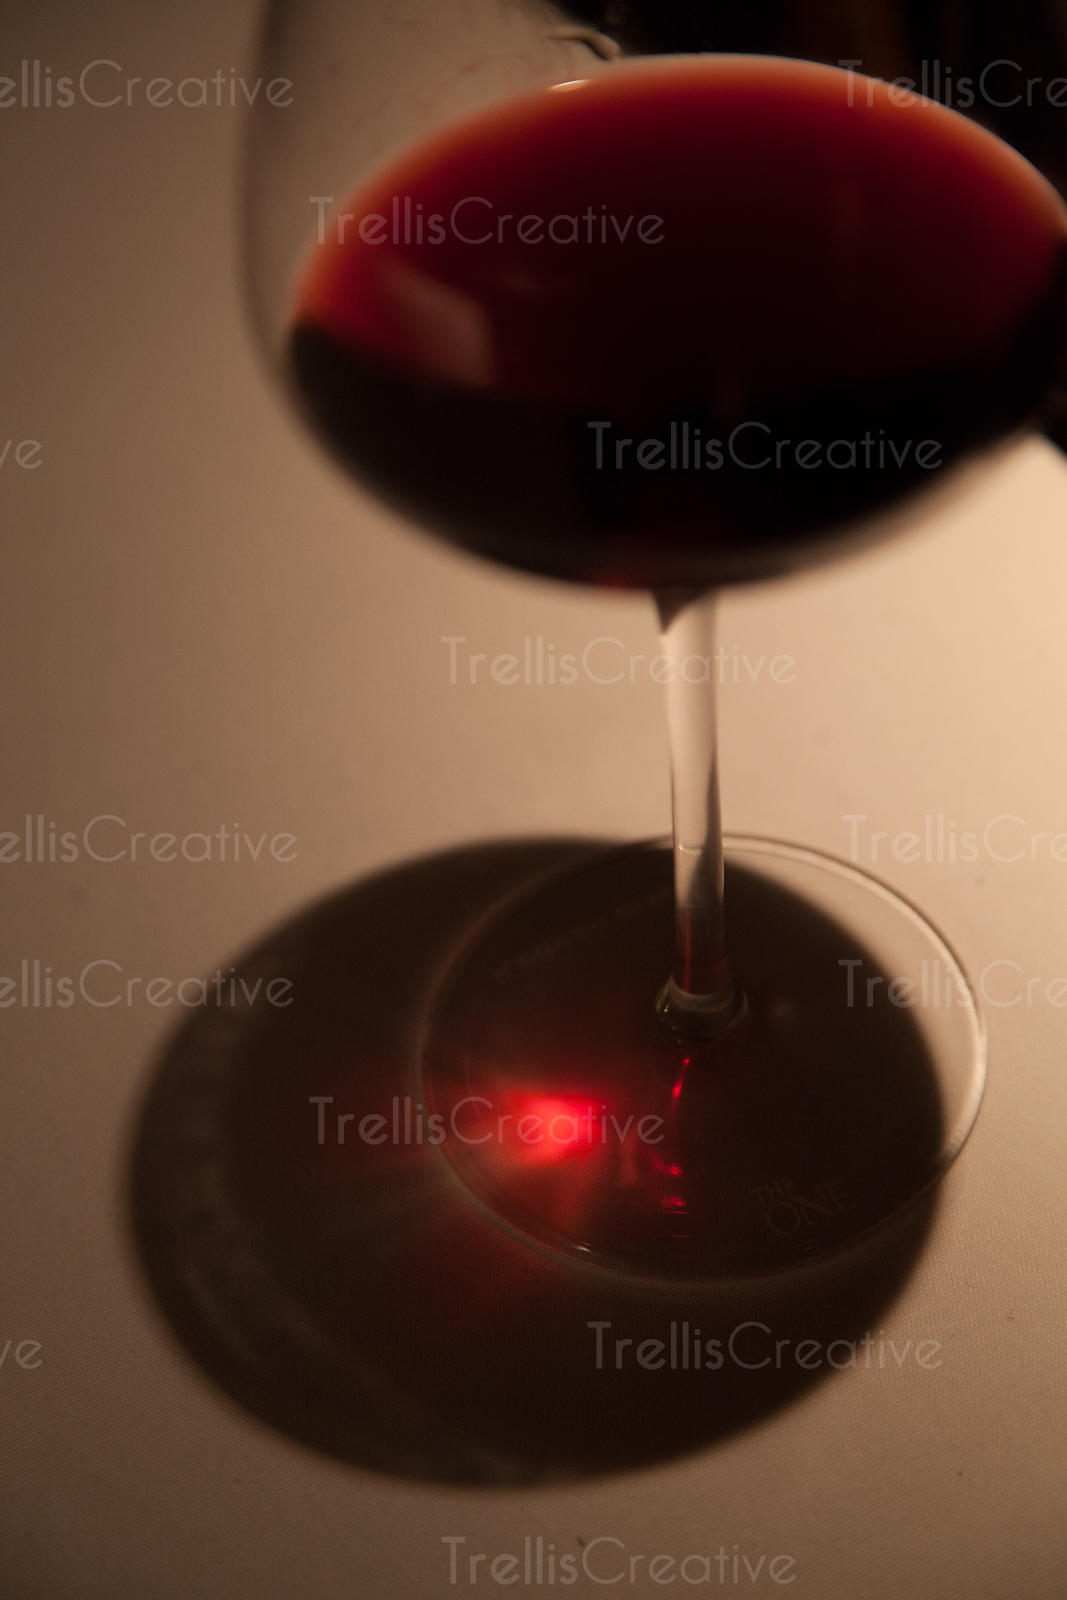 Glass of red wine on a white table with light shining through